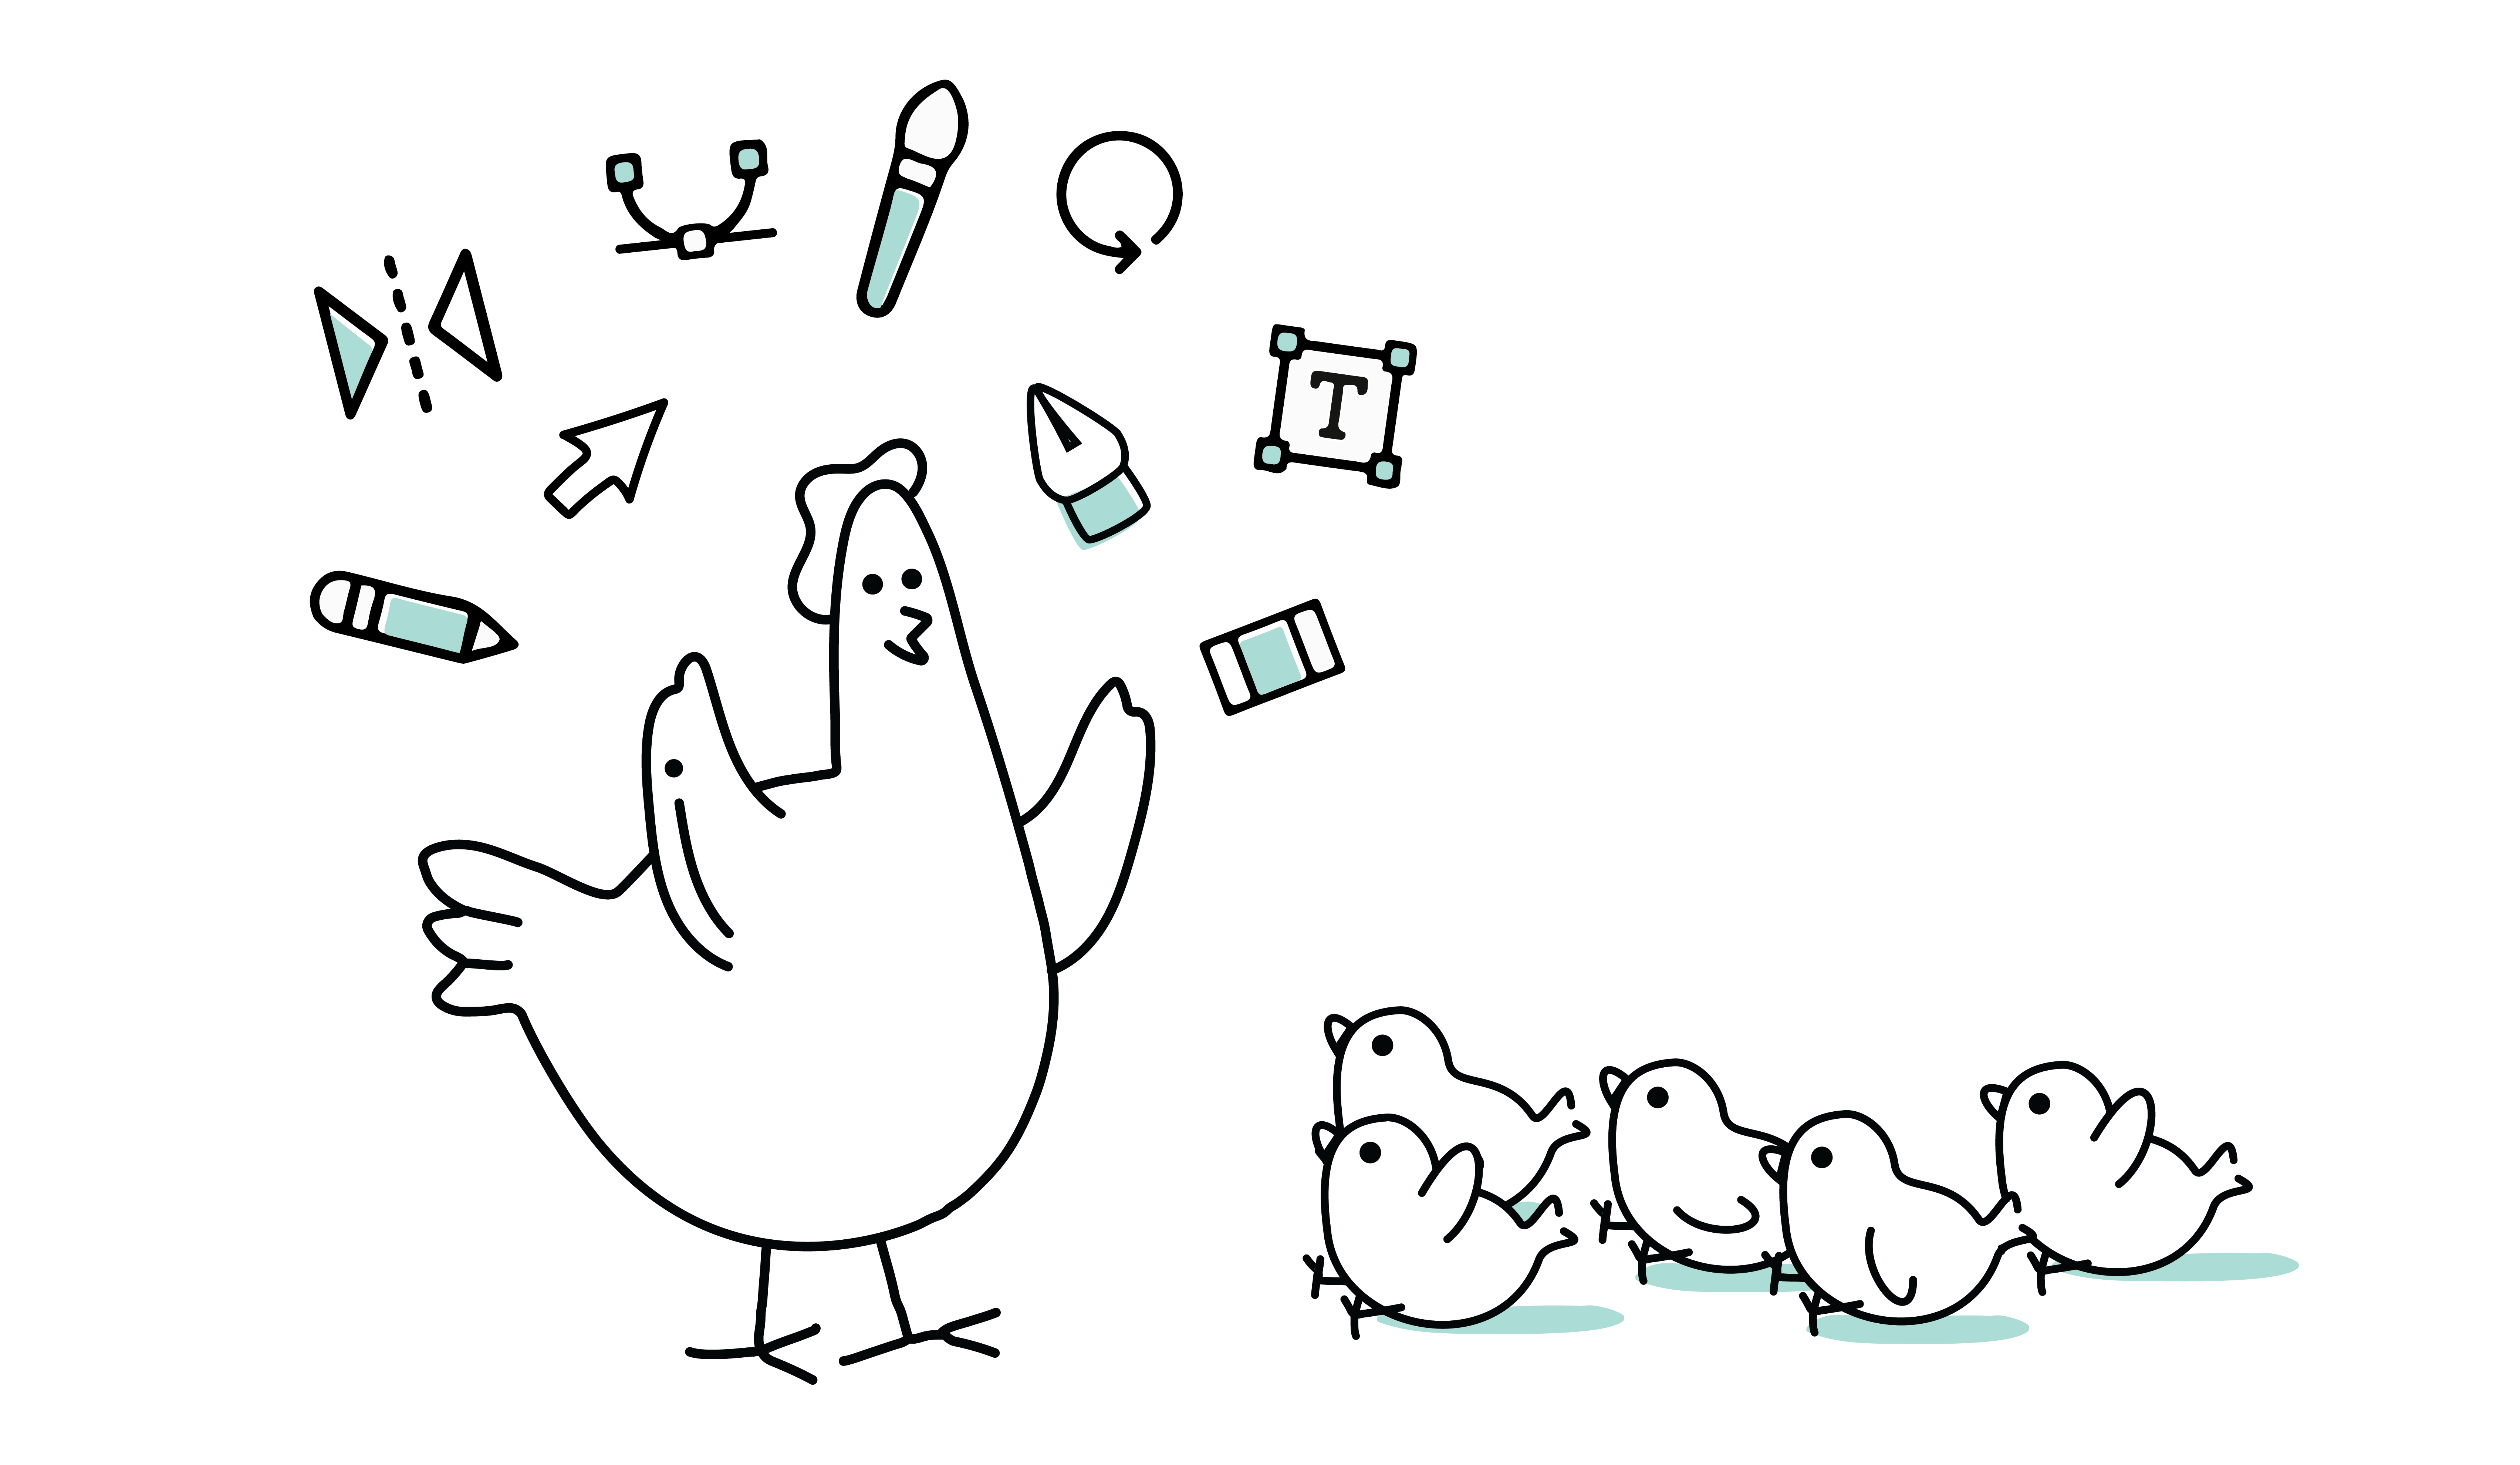 illustration depicting a chicken making design accessible to chicks